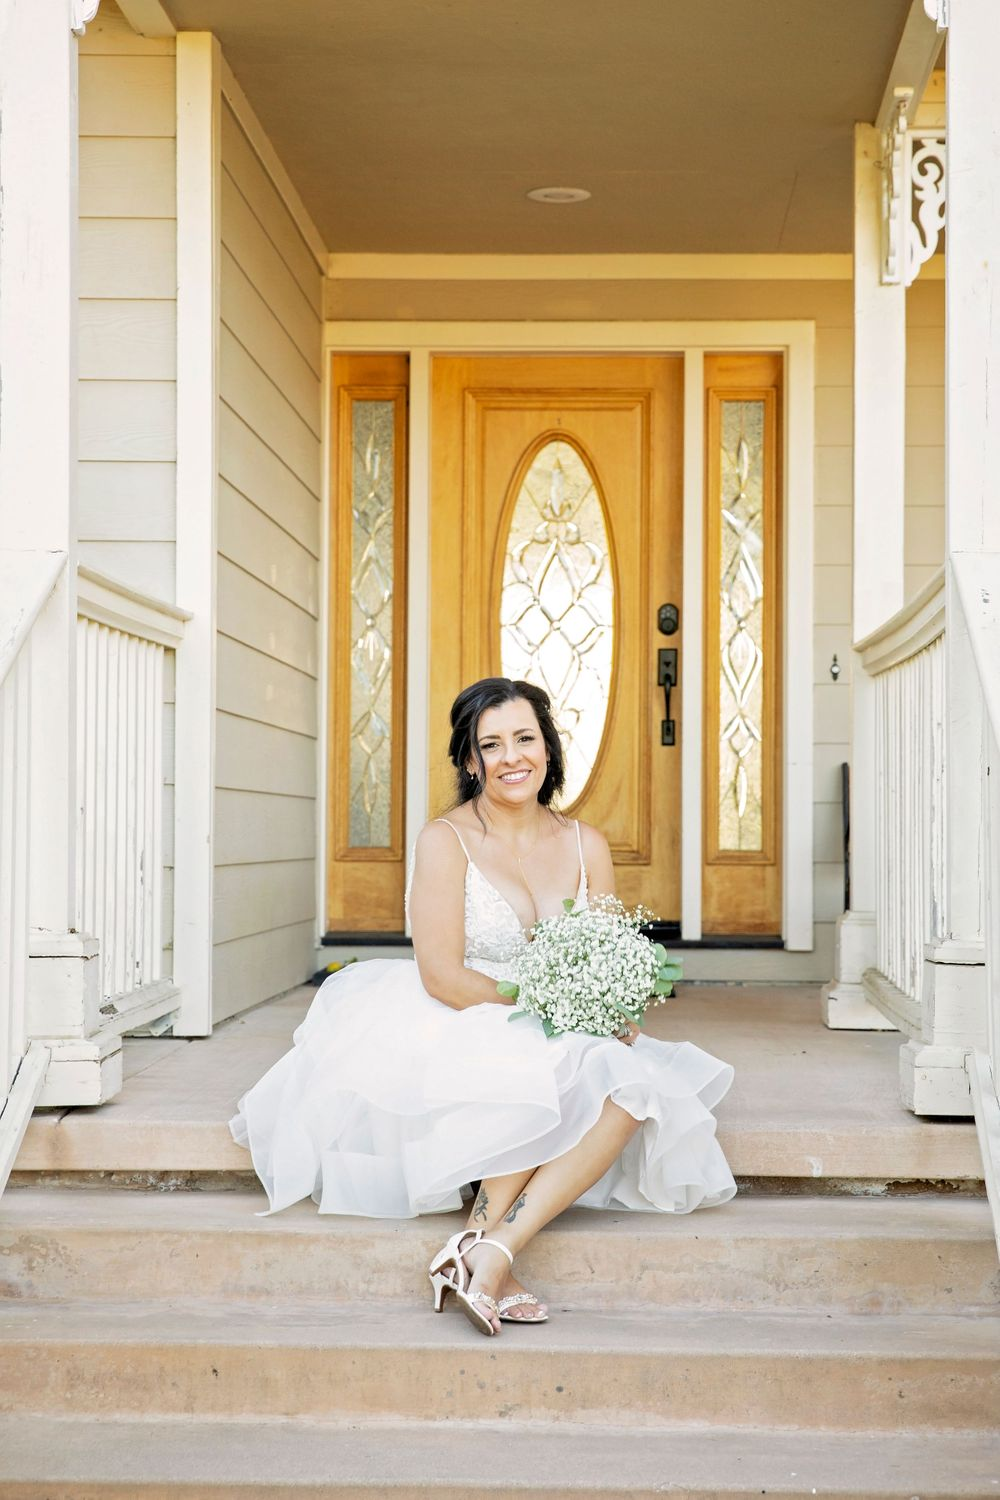 Bride on the steps at The Grace Maralyn Estate, Atascadero, California